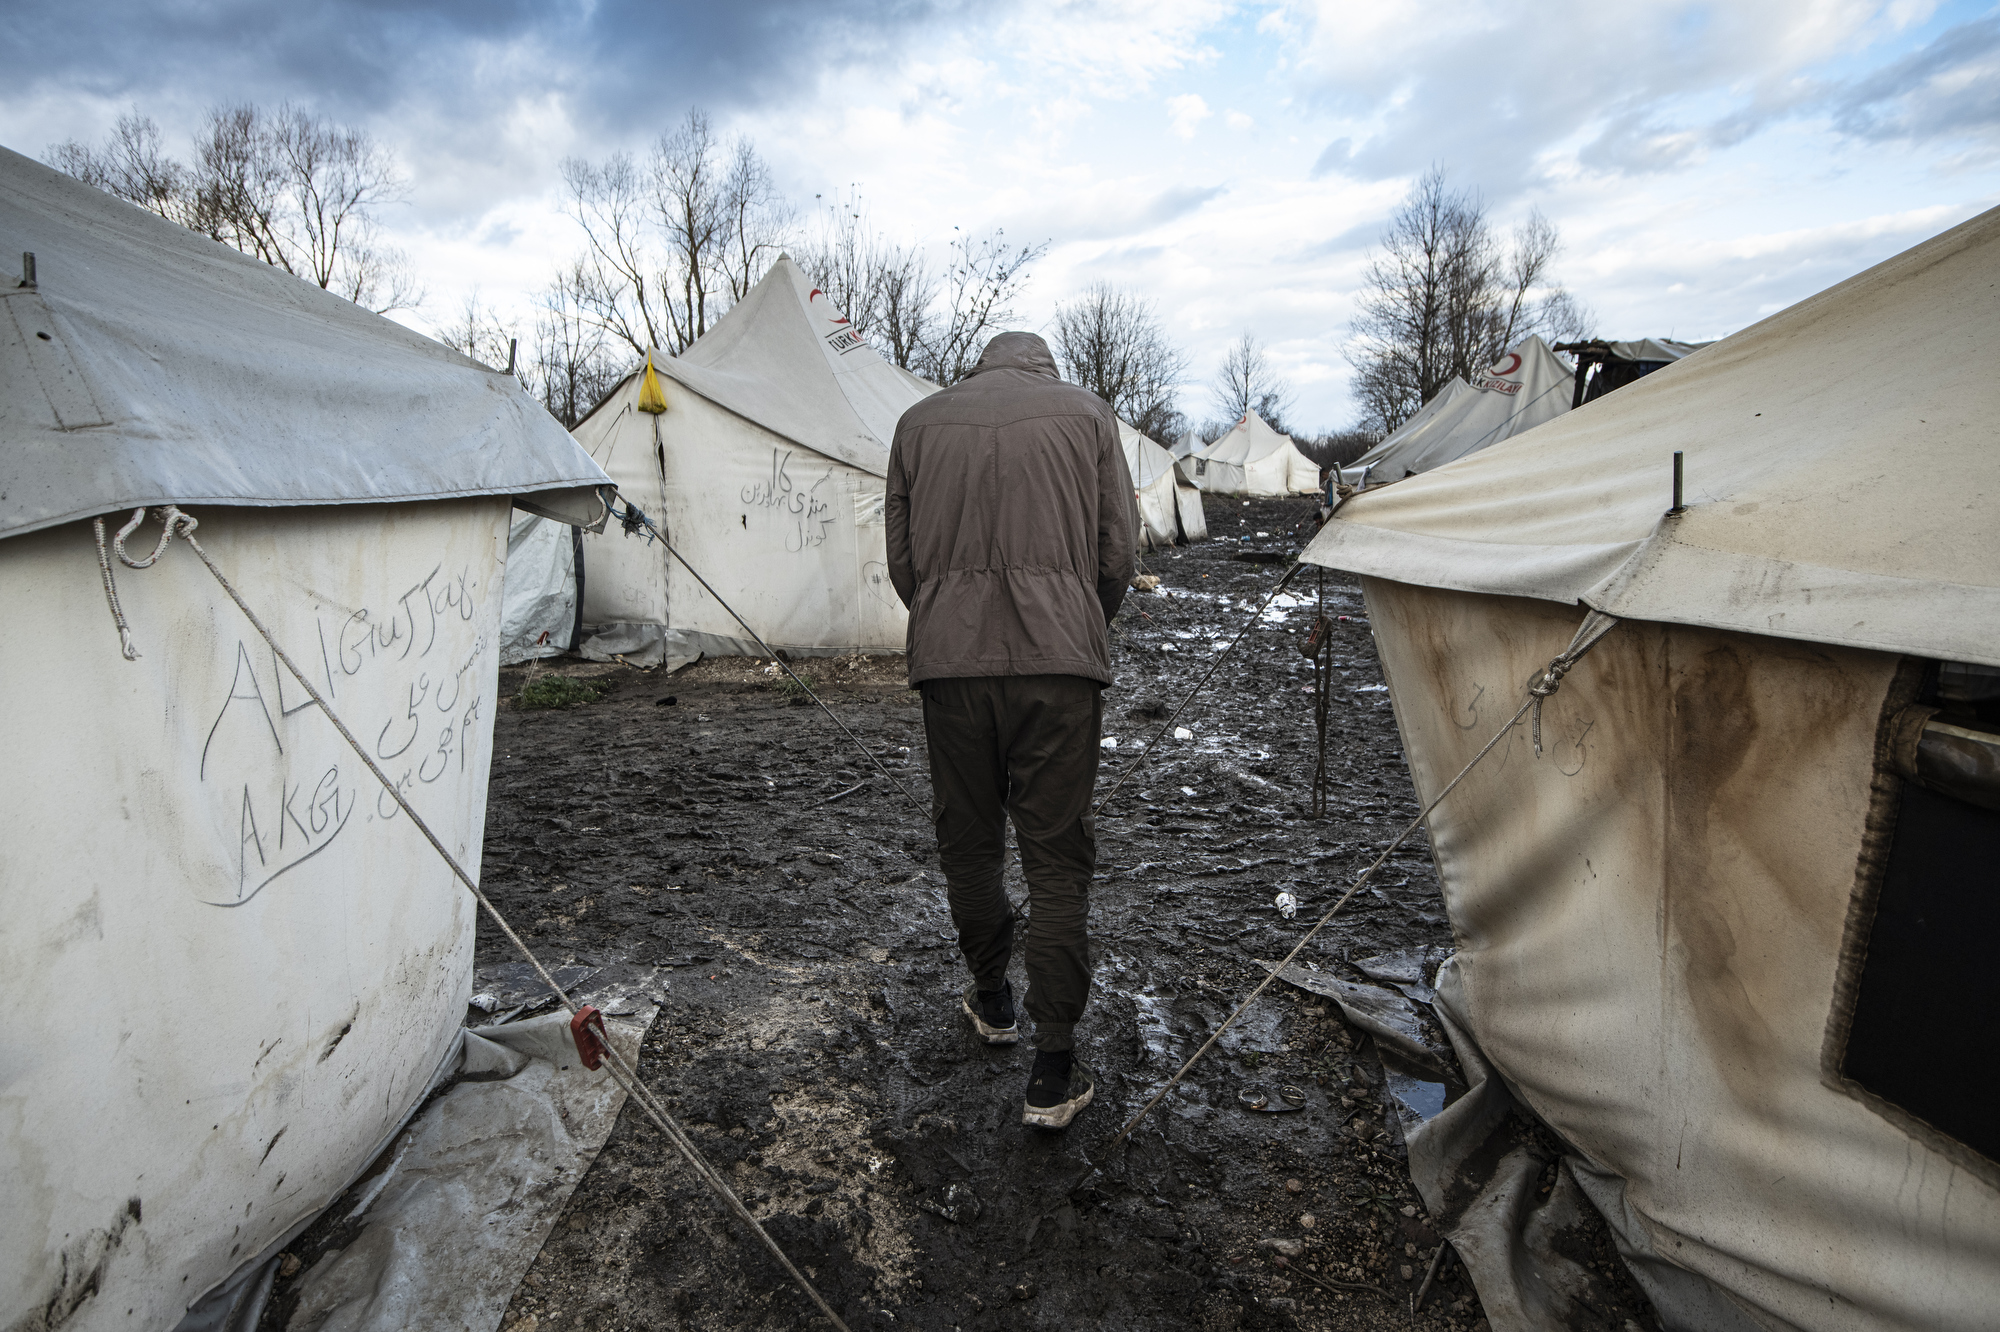 Teenage migrants trapped in Bosnia's bleak forests